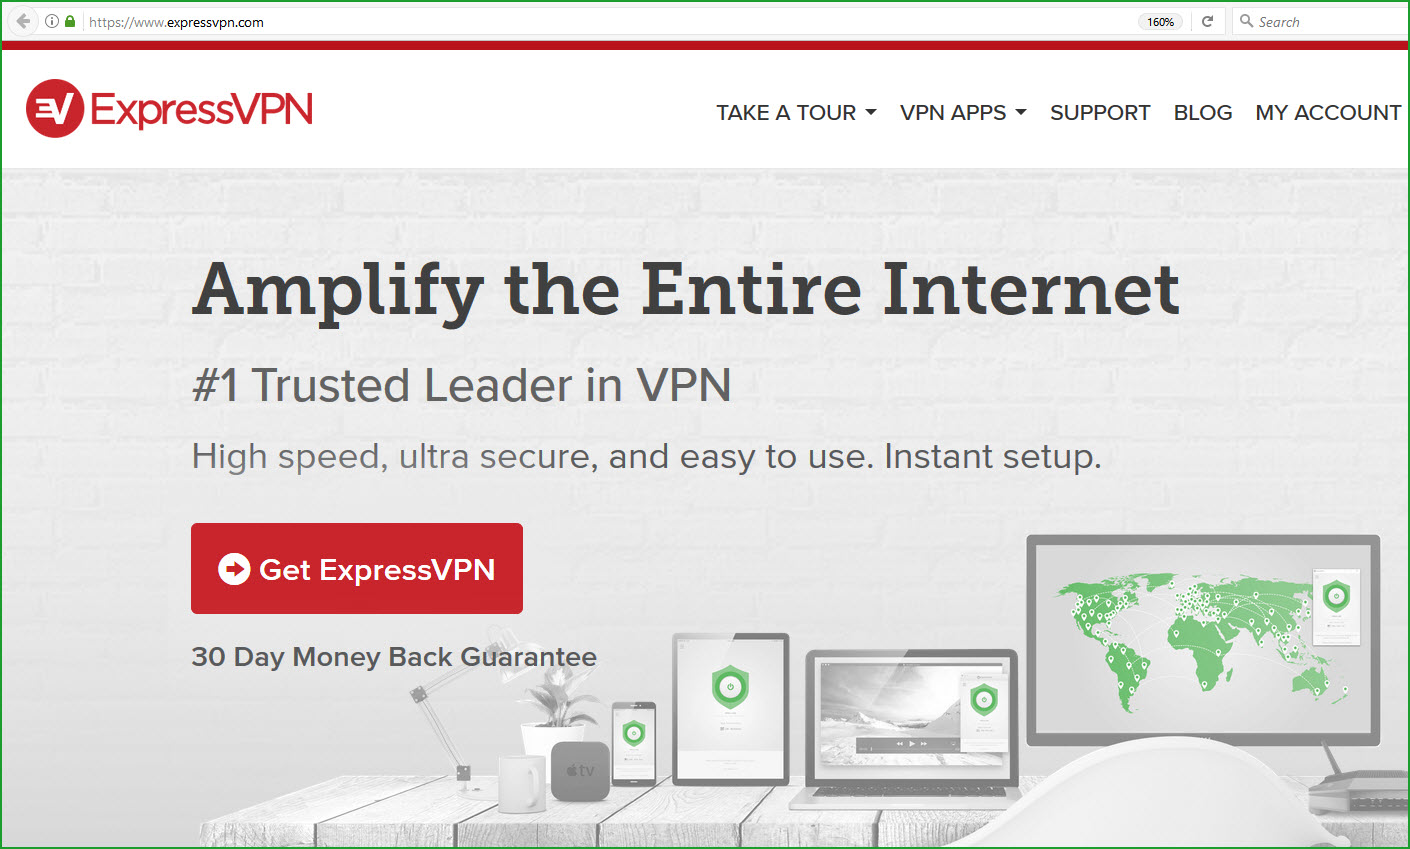 expressvpn review heading